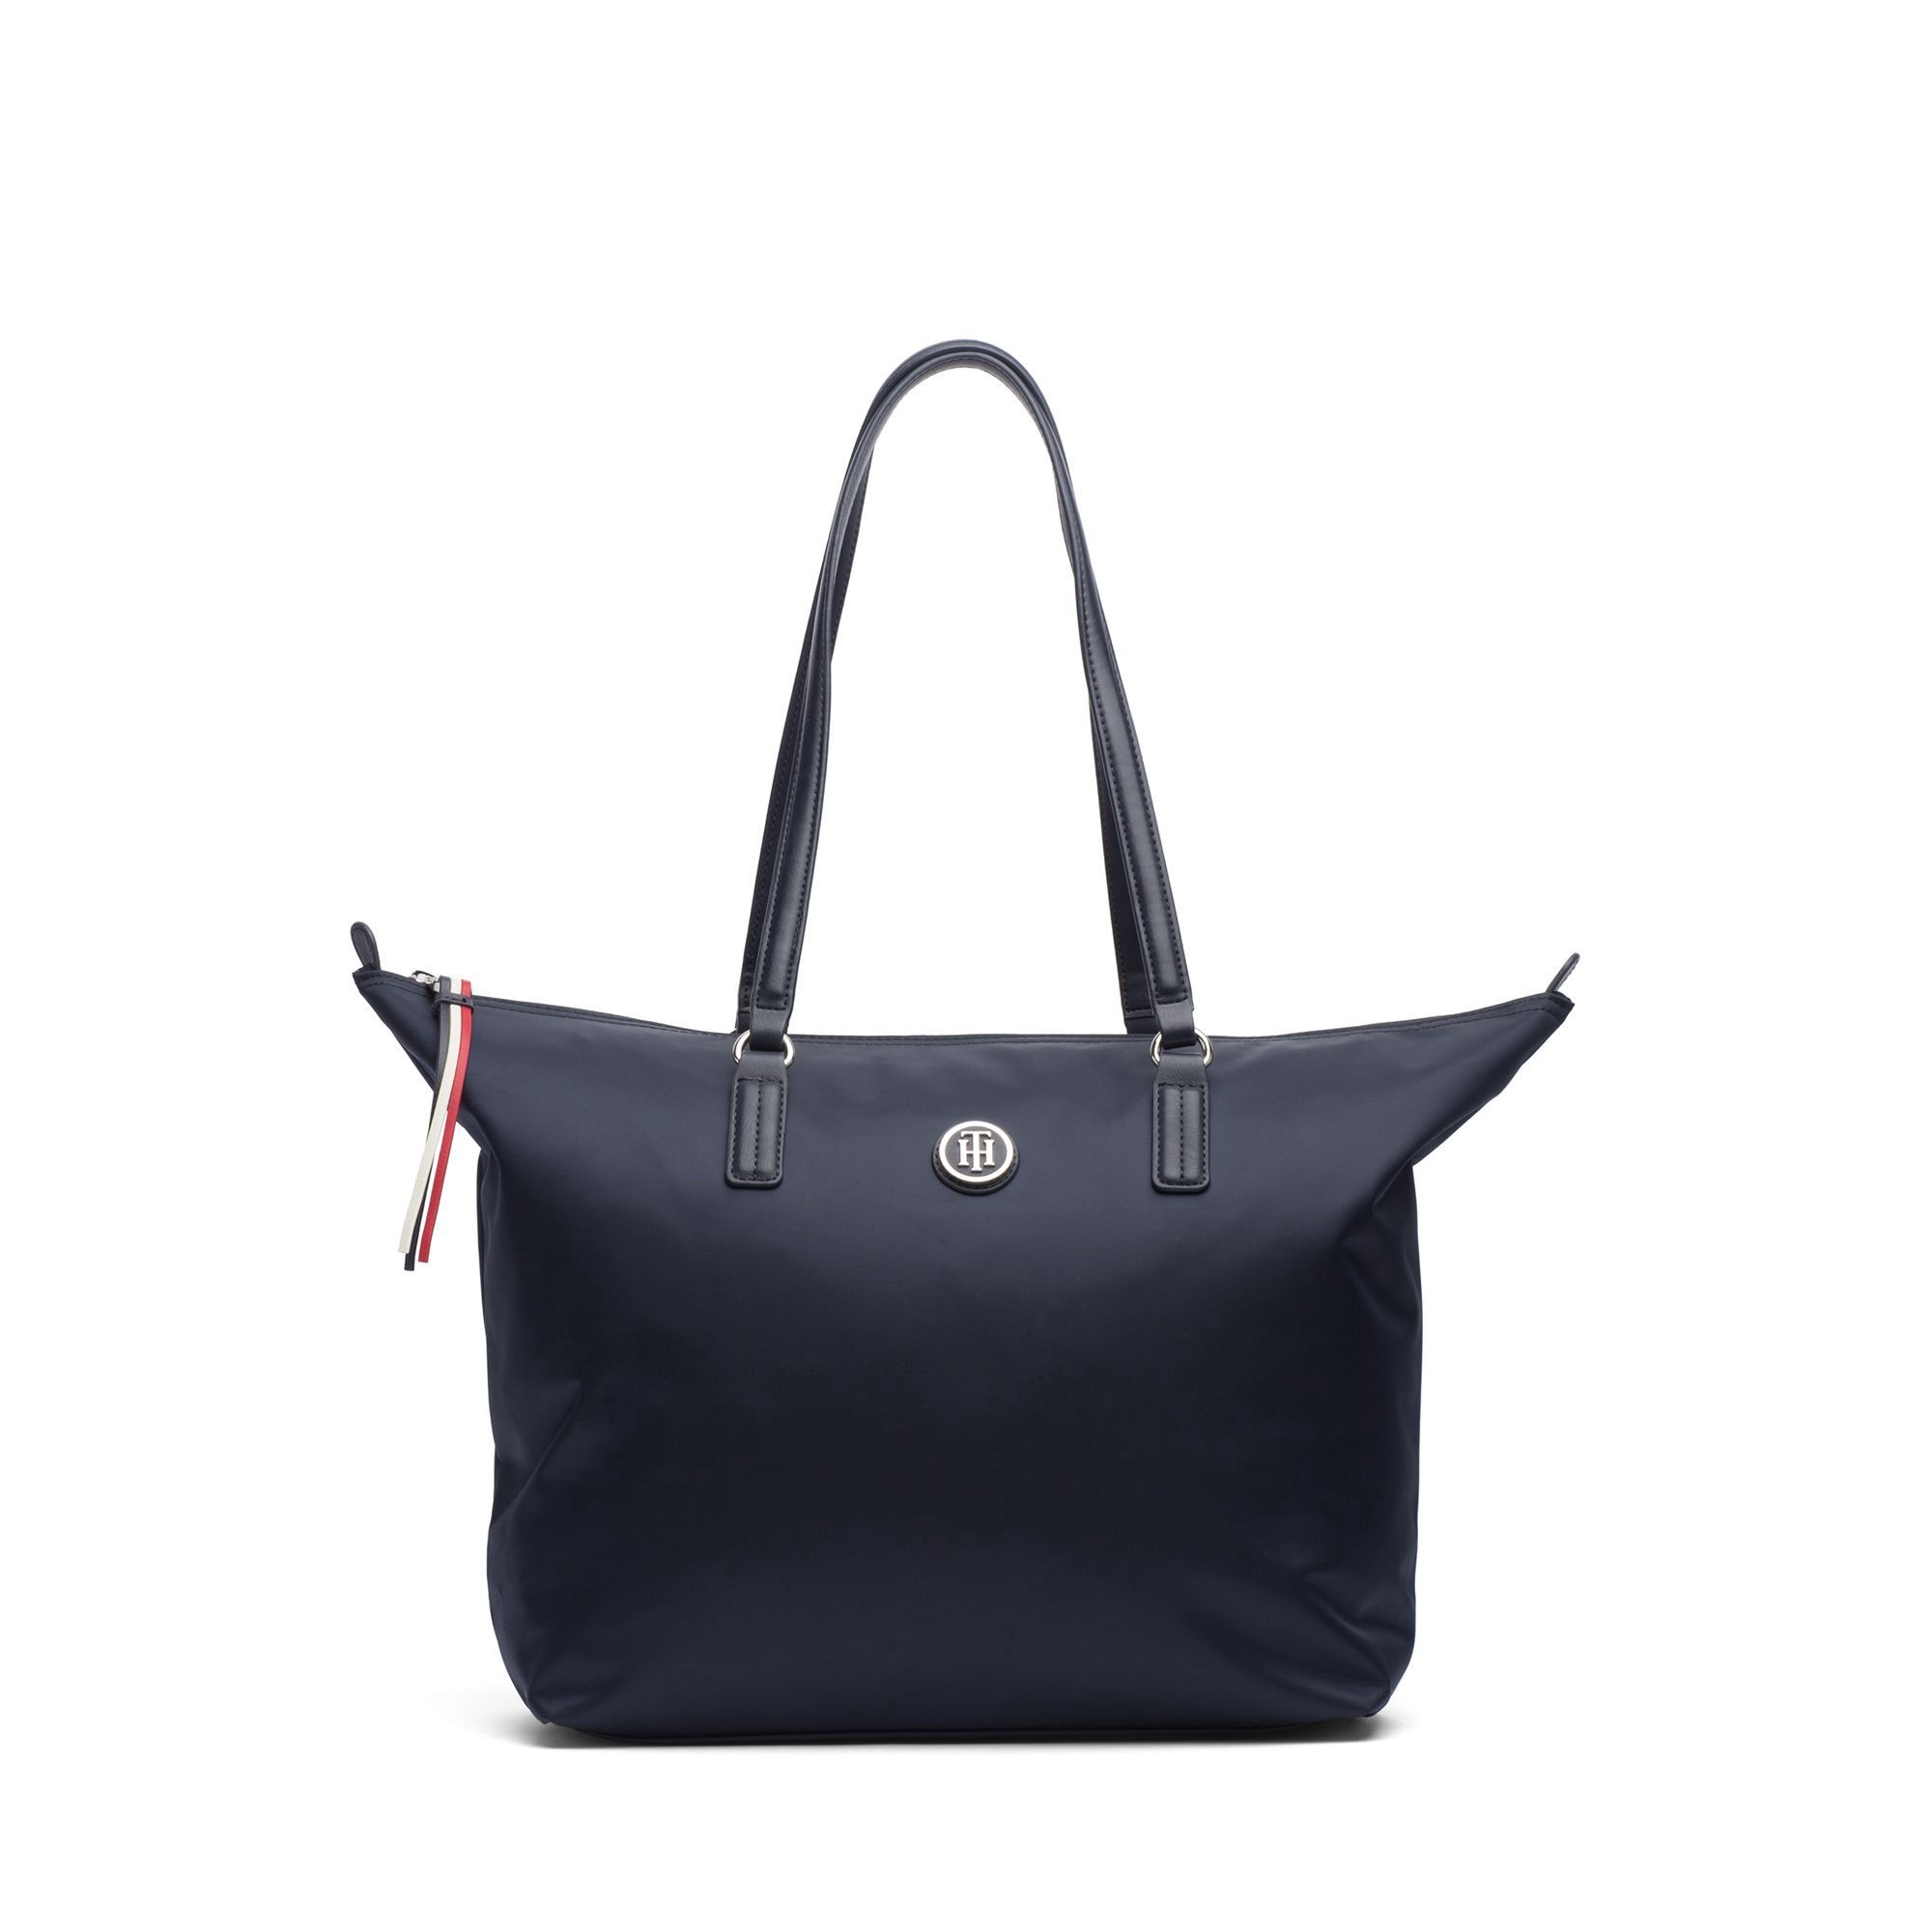 5297ae137741b TOMMY HILFIGER SIGNATURE TOTE - TOMMY NAVY.  tommyhilfiger  bags  hand bags   nylon  tote